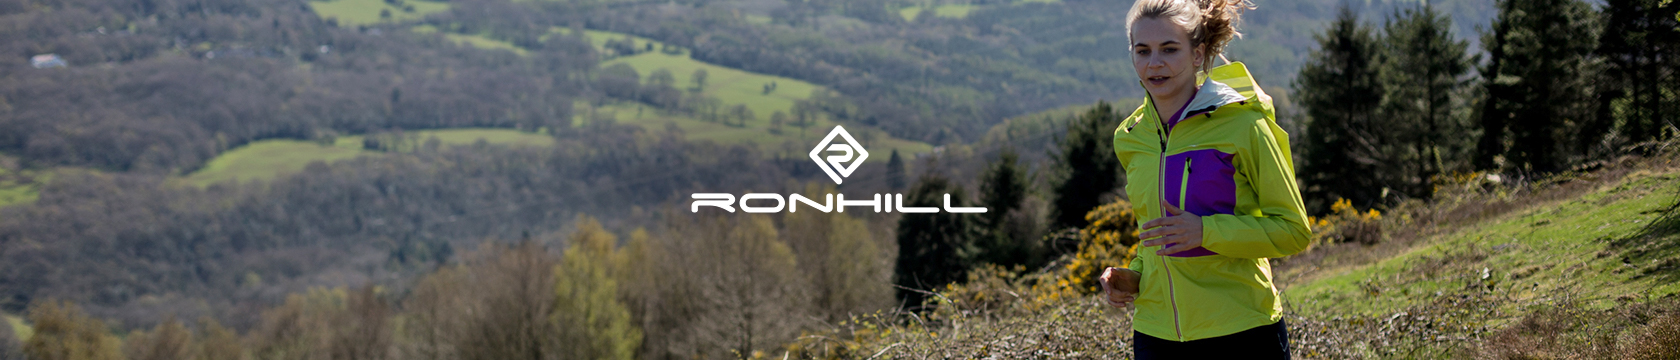 Running with Ronhill.